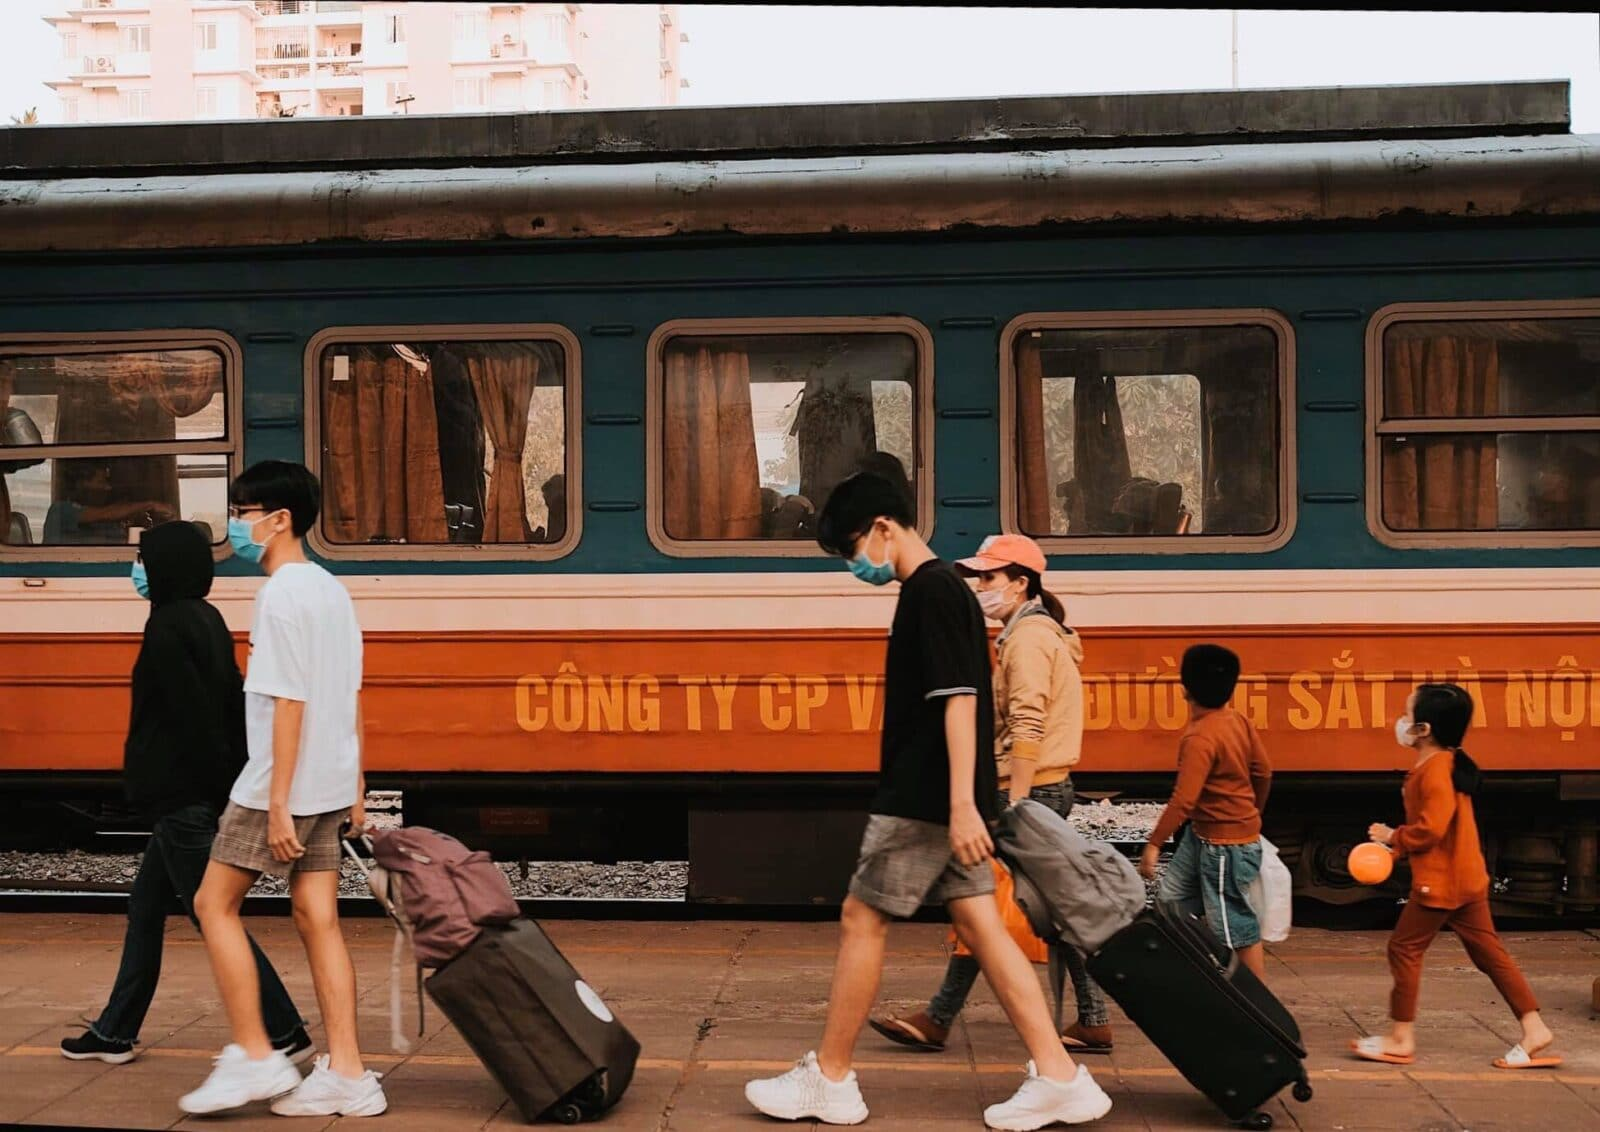 Image of the Sapaly Express Train in Vietnam